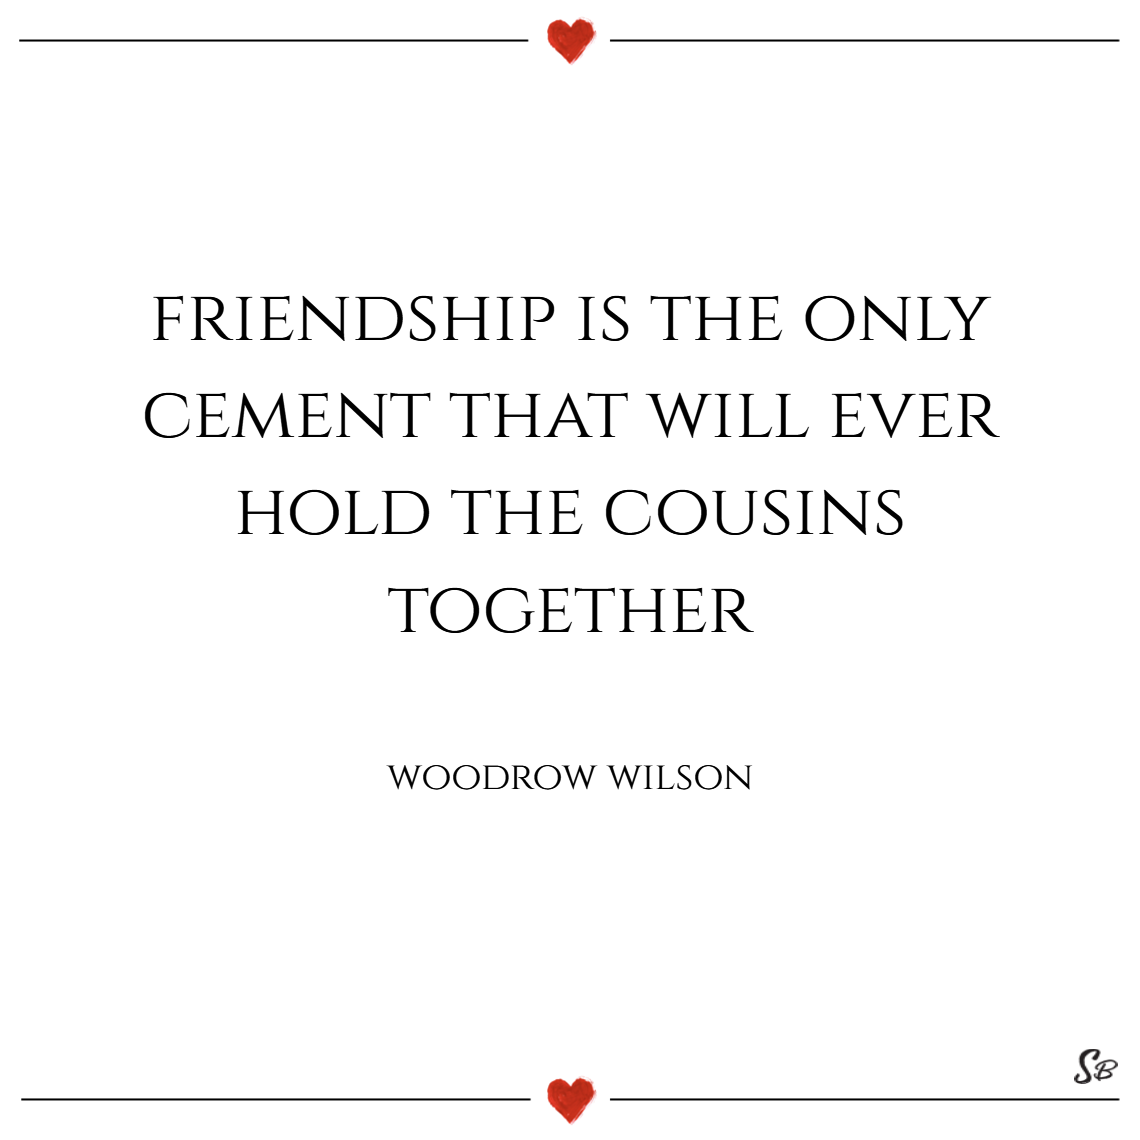 Friendship is the only cement that will ever hold the cousins together. – woodrow wilson